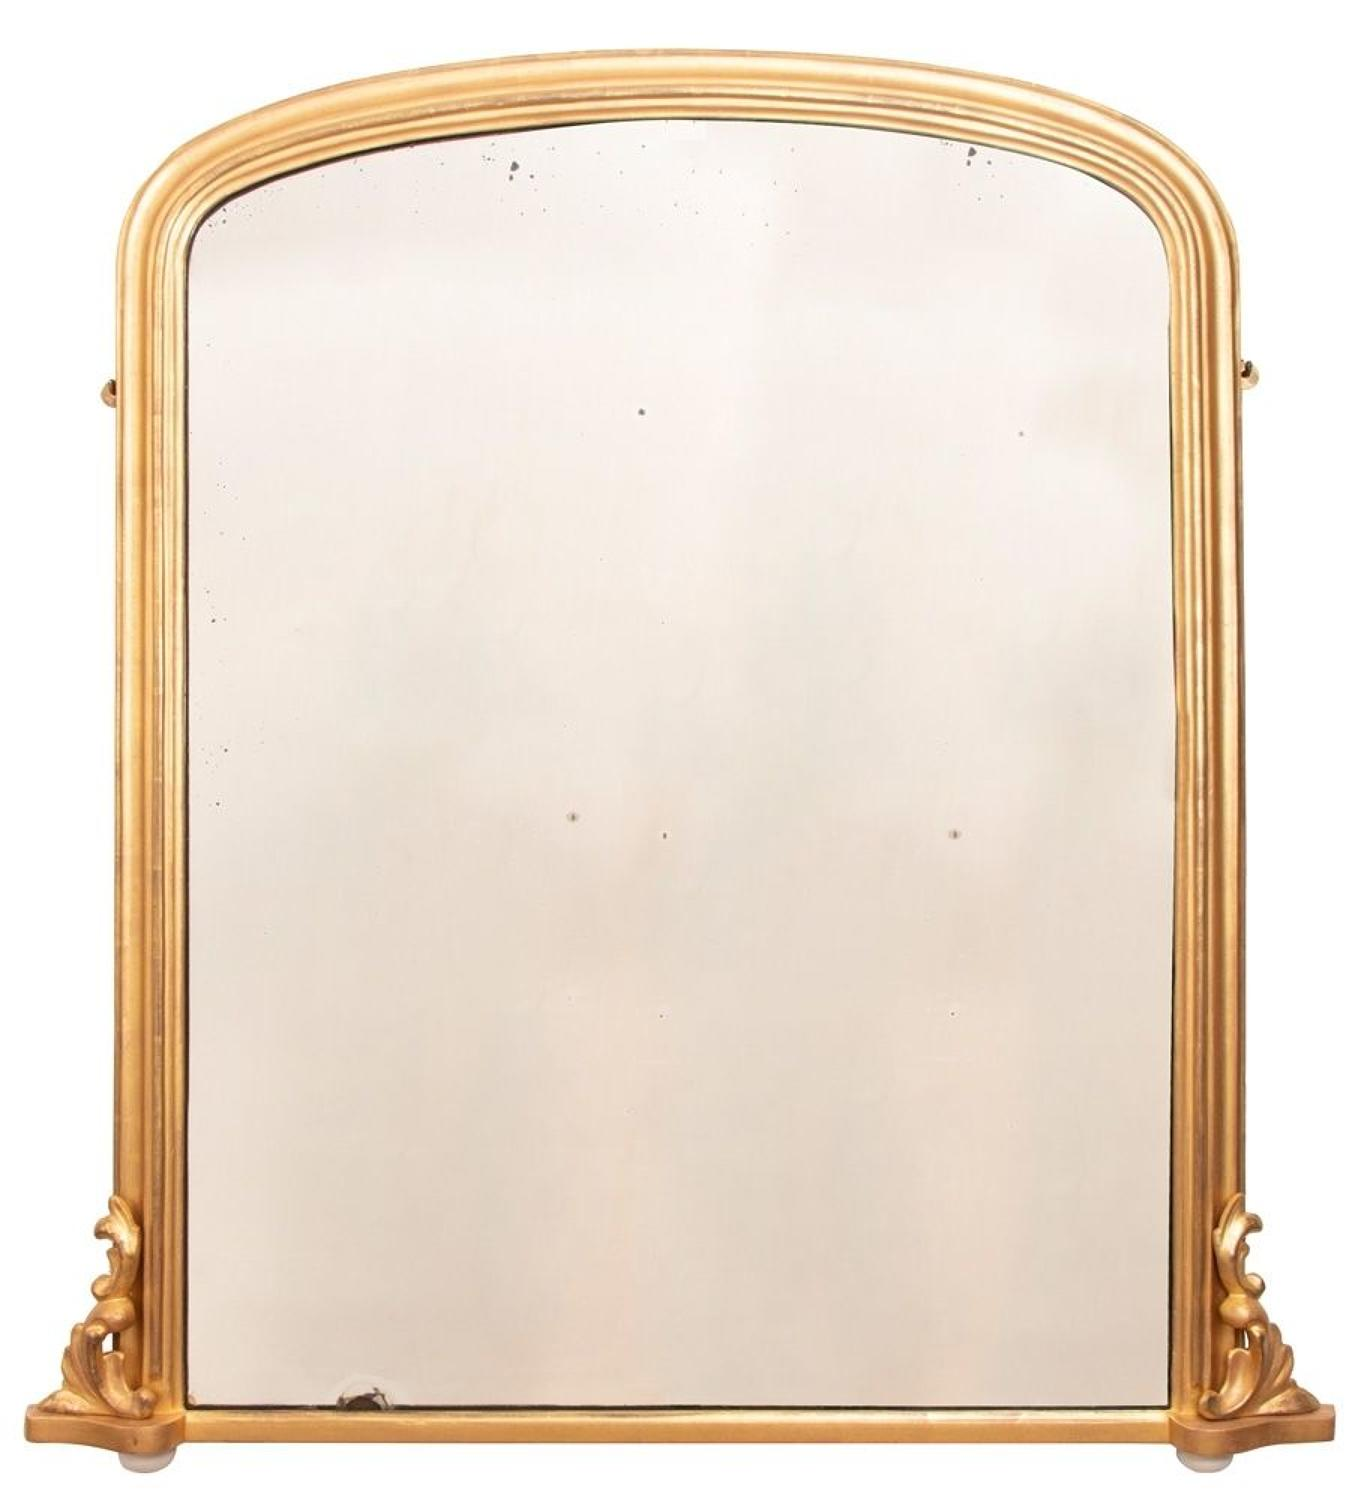 Antique English Giltwood Overmantle Mirror c.1880